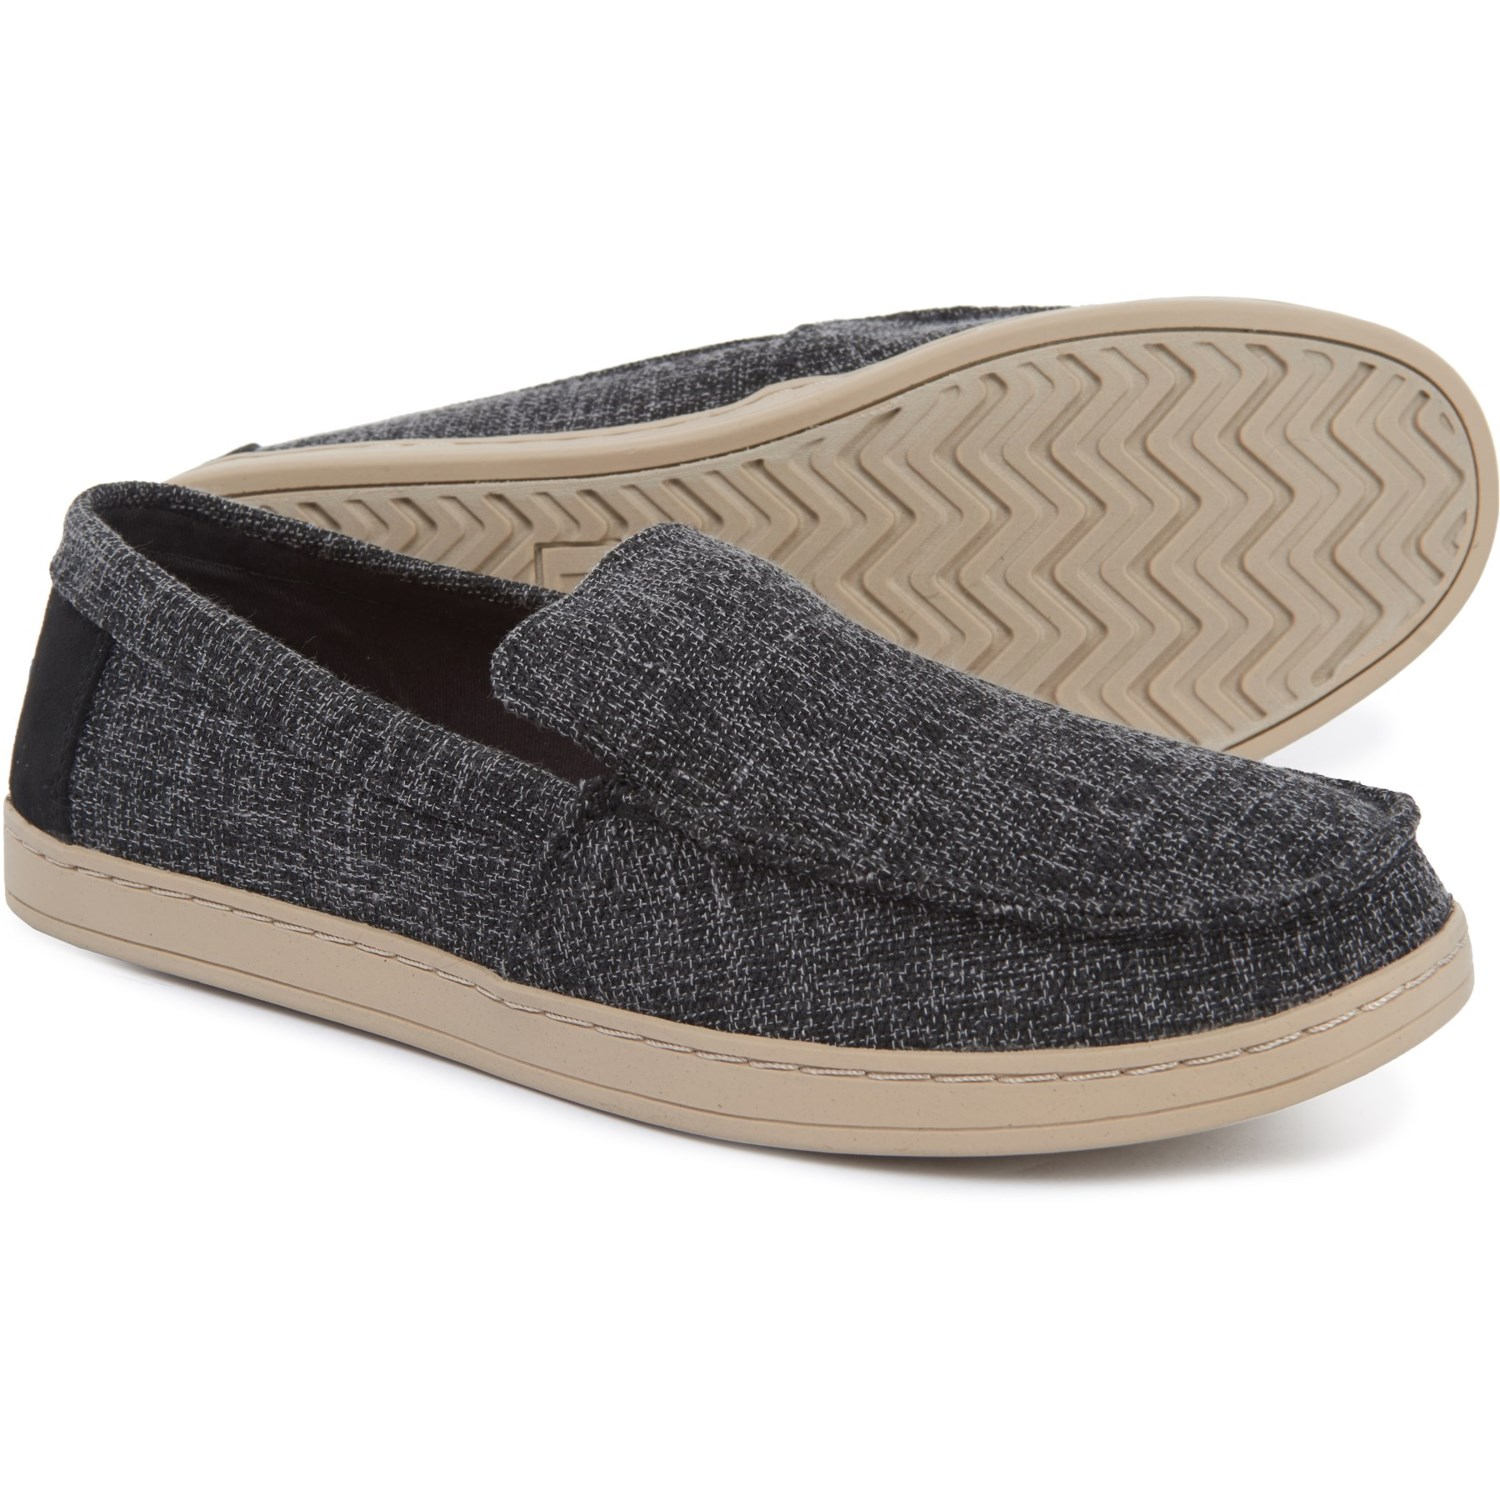 4c50700961 TOMS Forged Iron Aiden Woven Casual Shoes - Slip-Ons (For Men) in